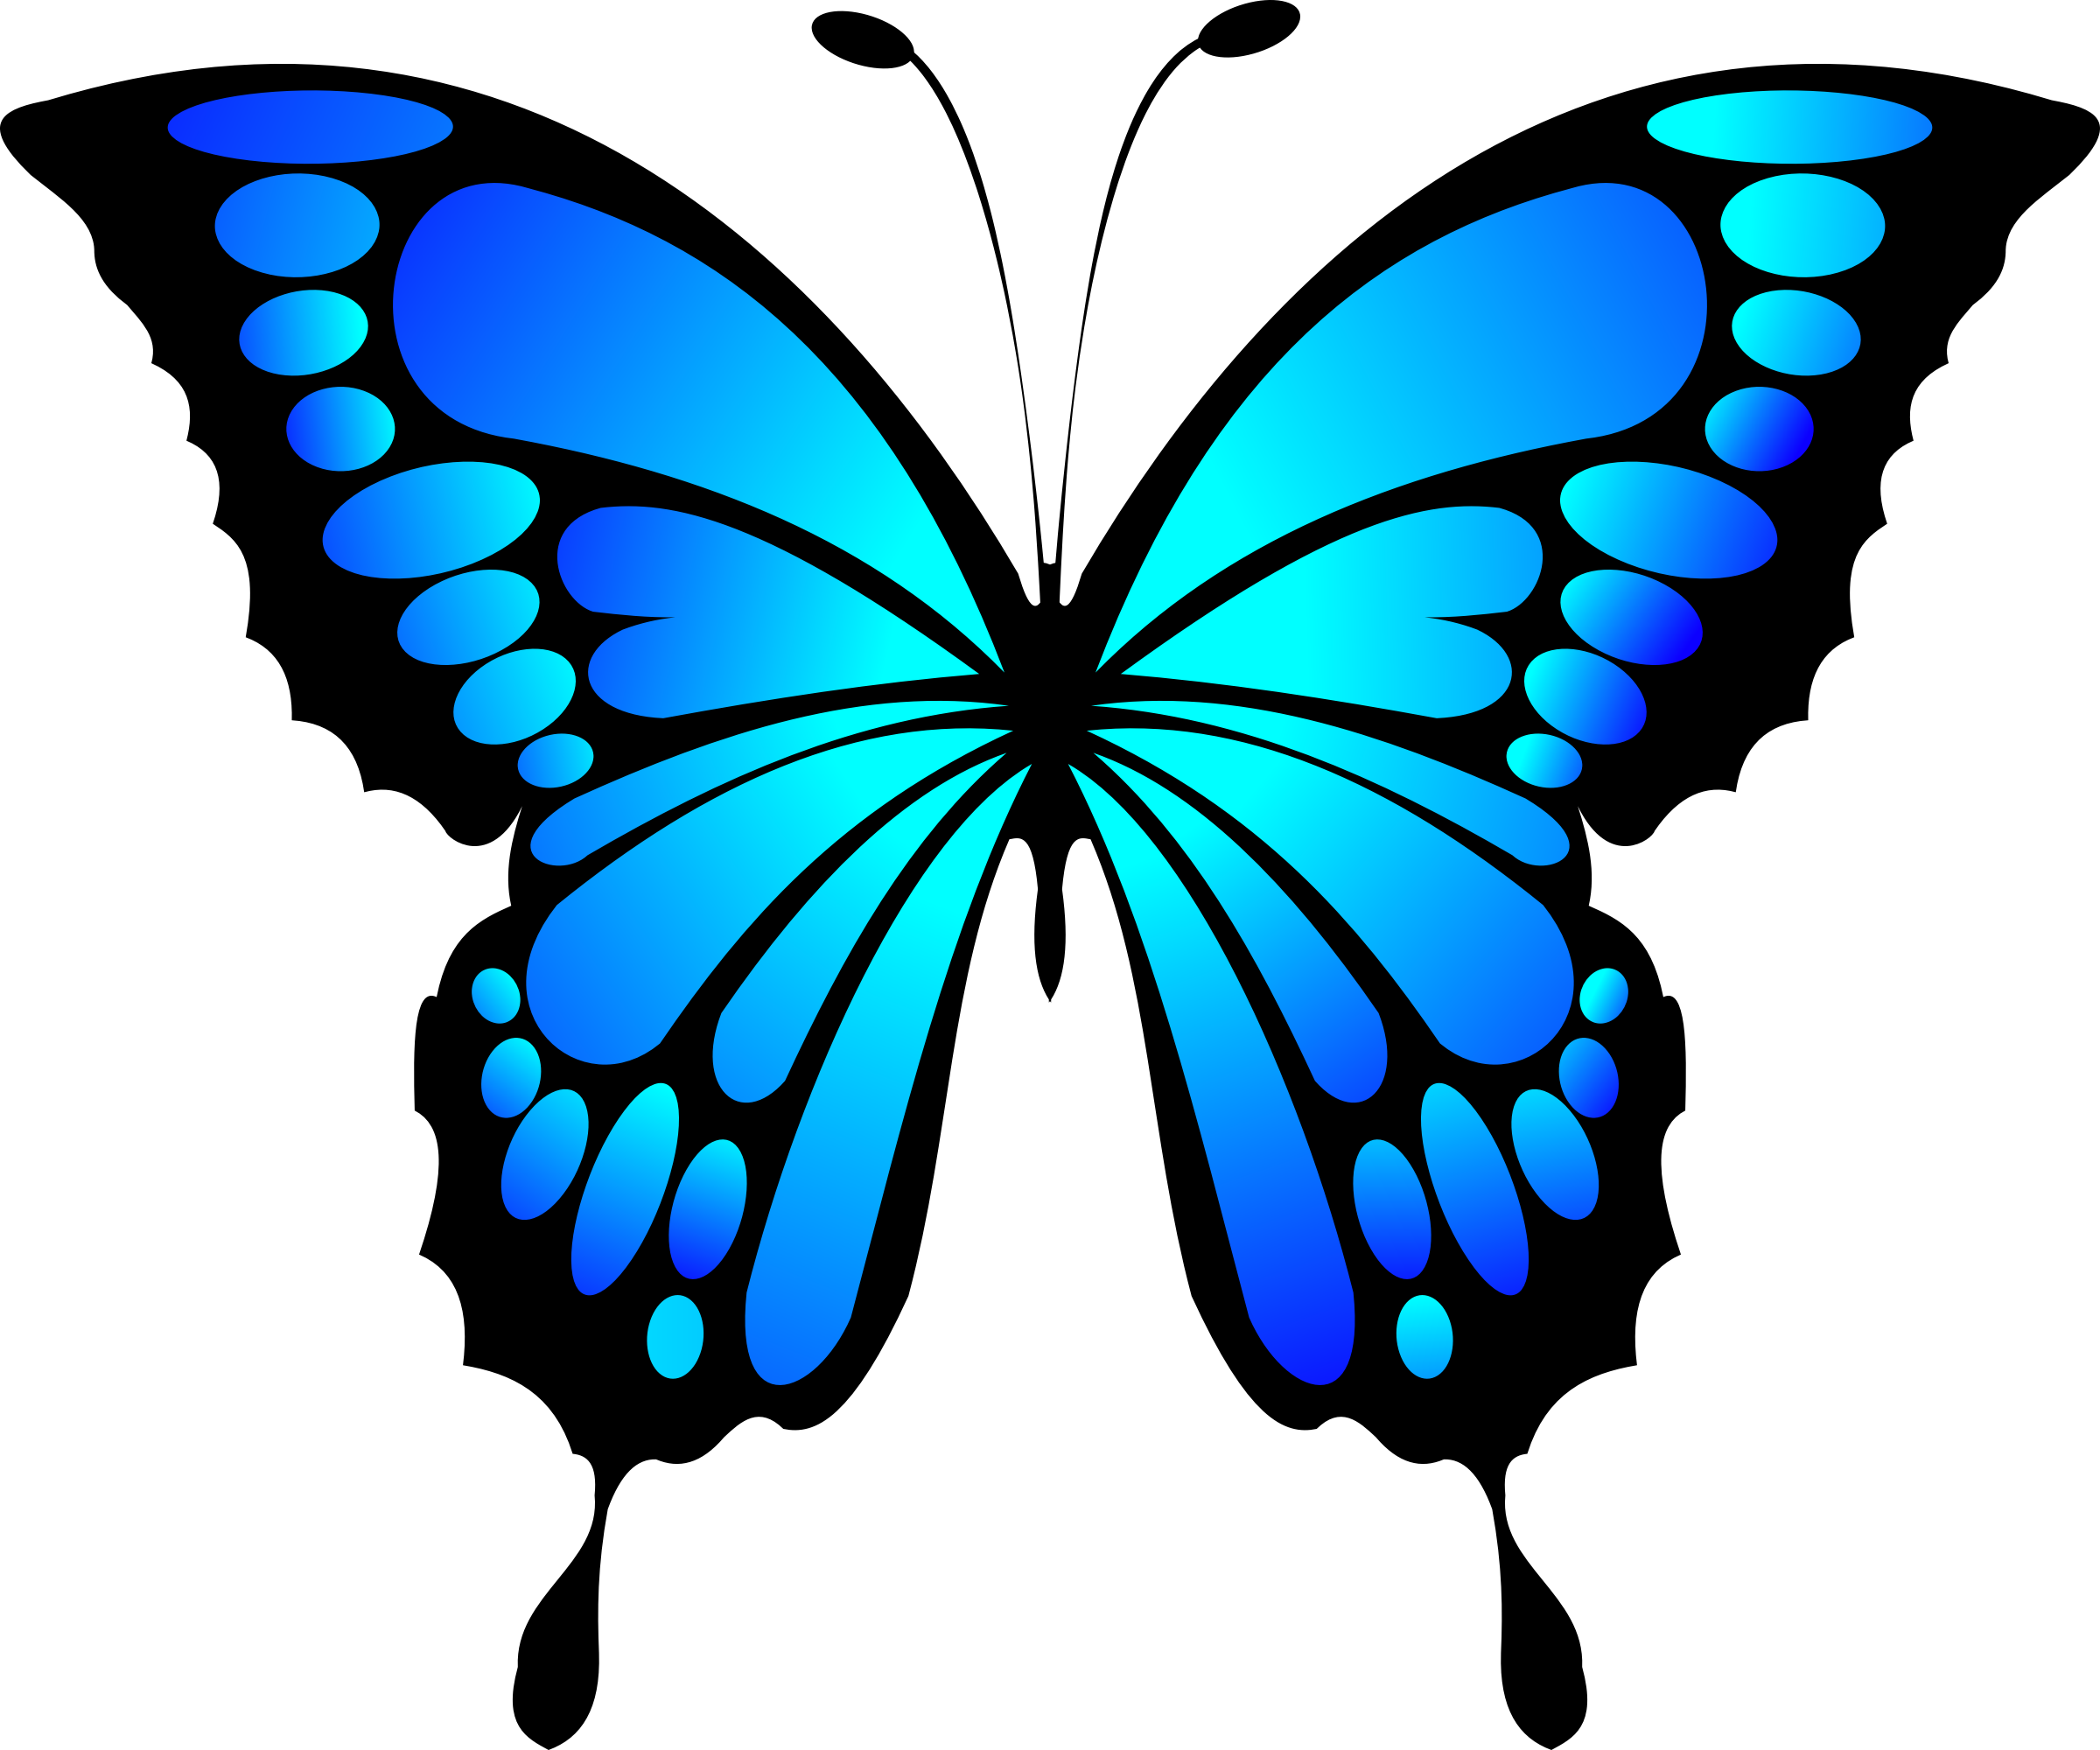 HD Blue Butterfly Cliparts The Cliparts.